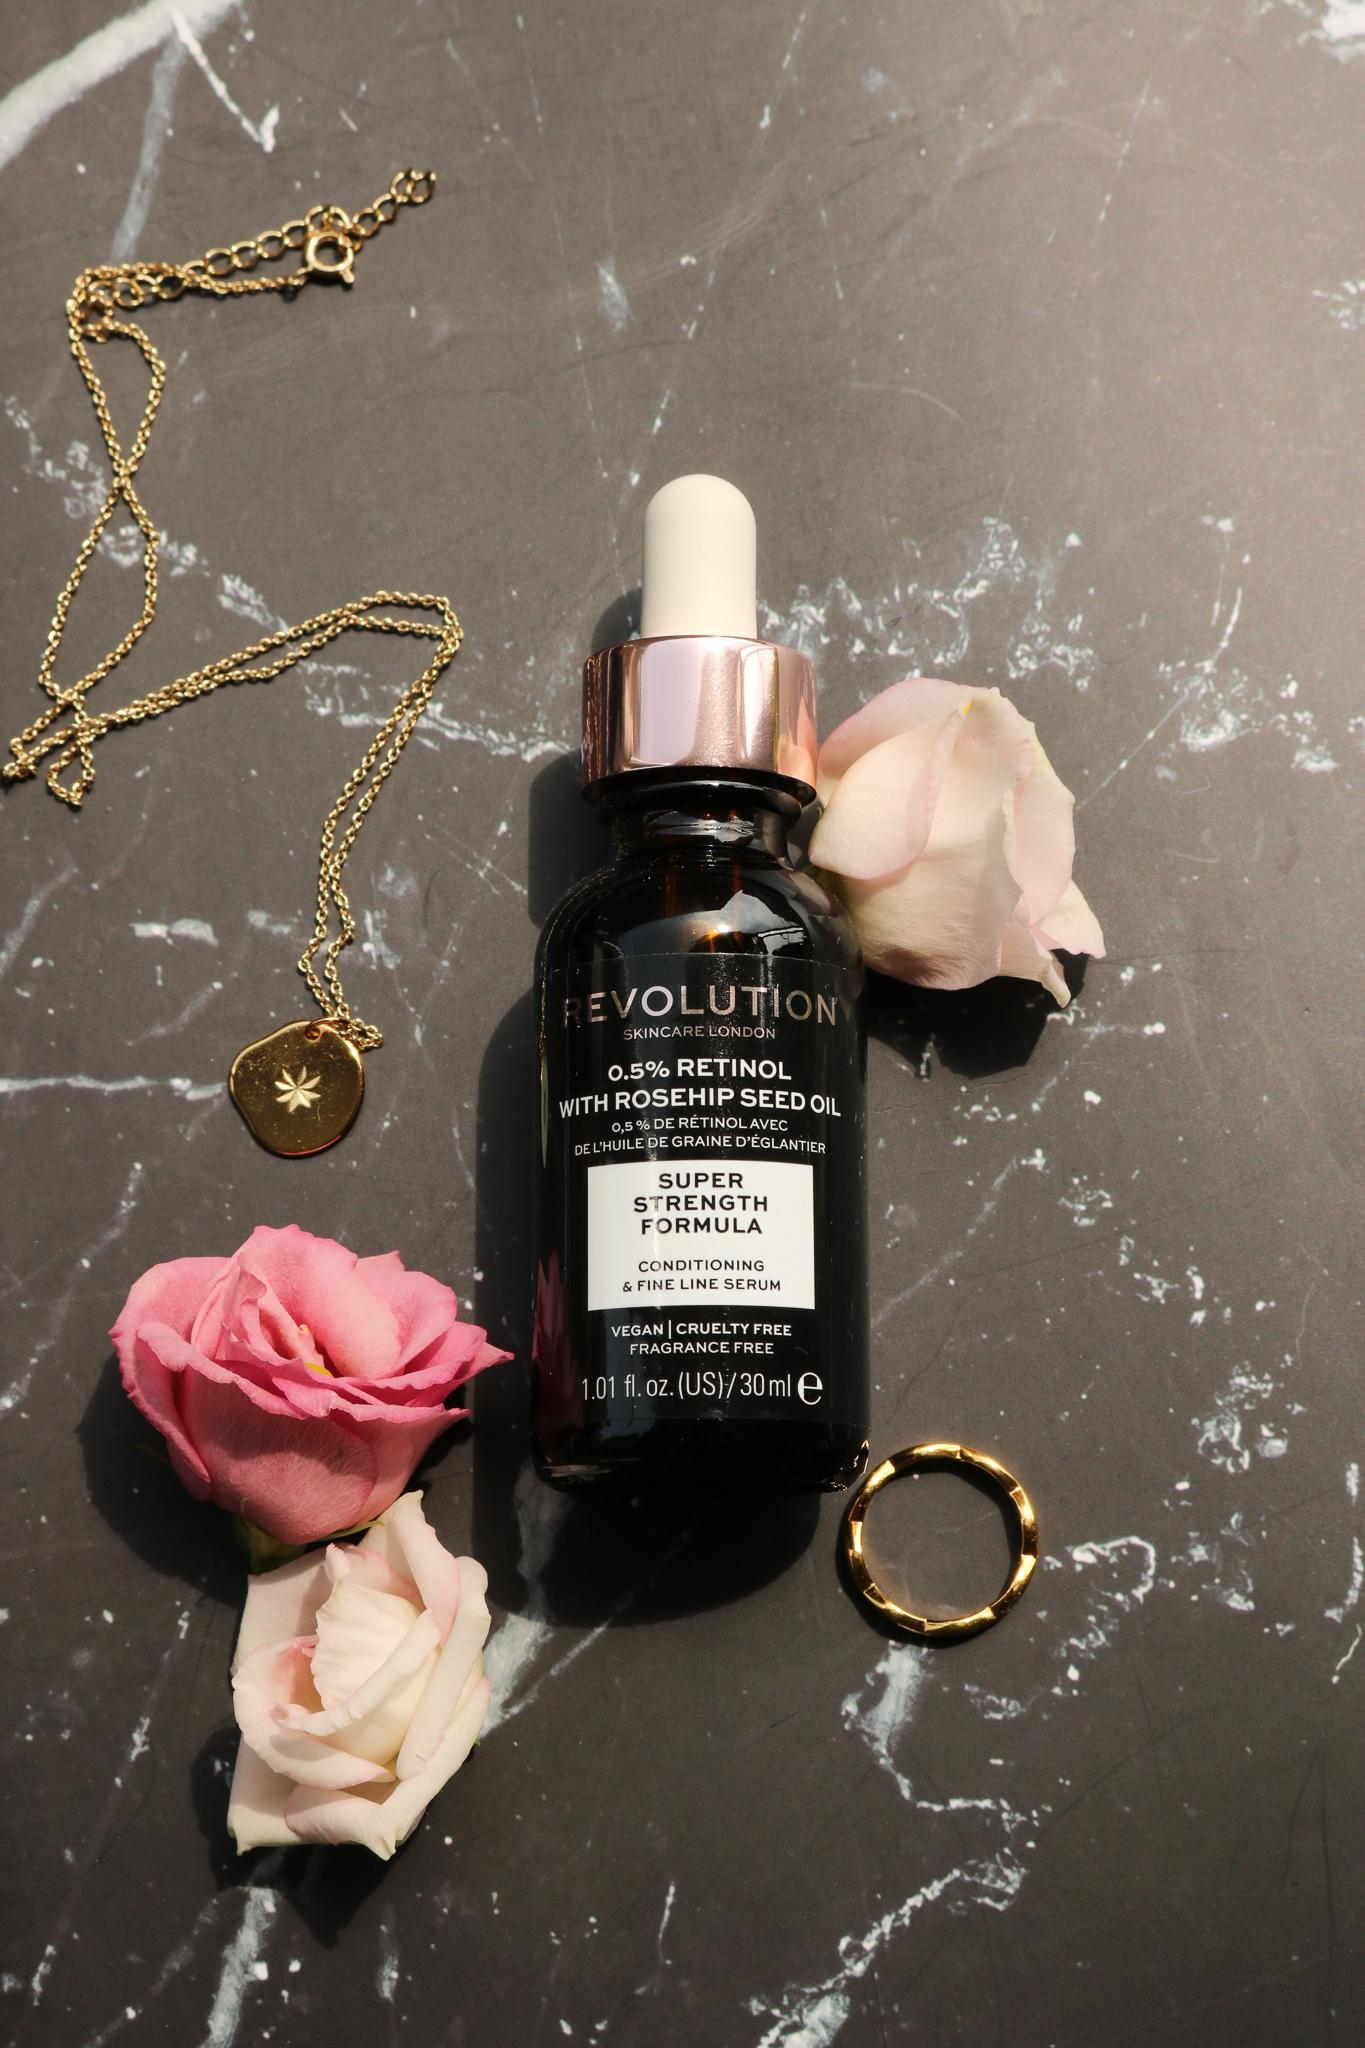 Revolution Skincare Retinol Super Serum